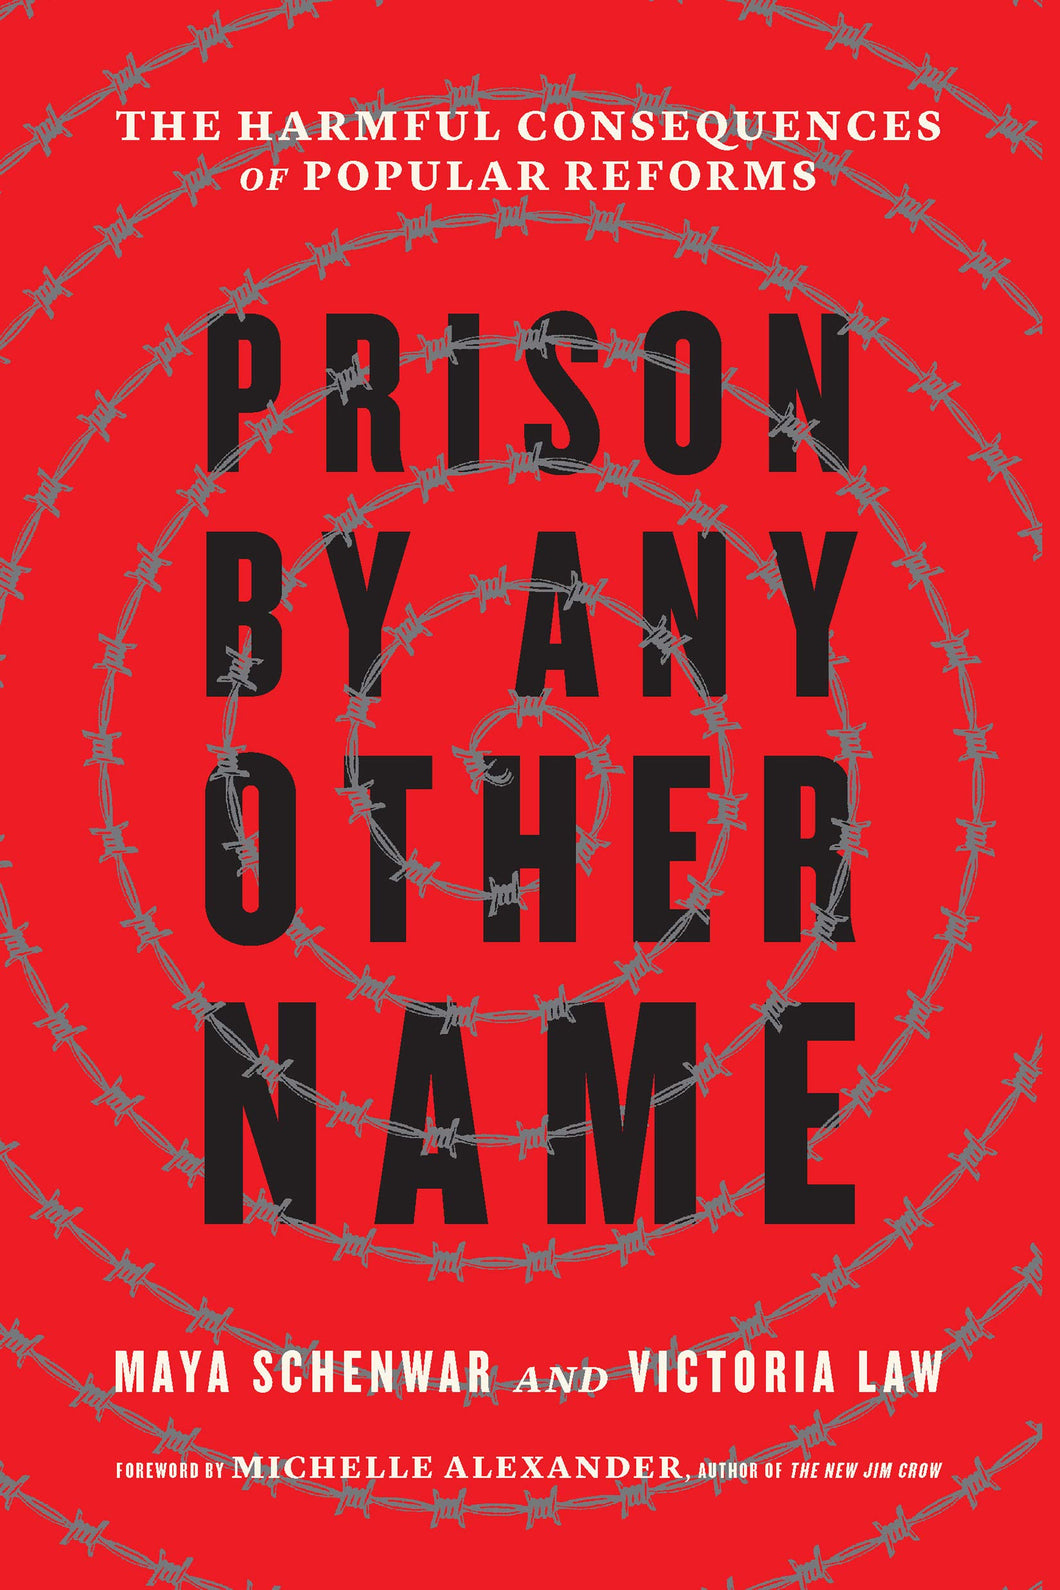 Prison by Any Other Name: The Harmful Consequences of Popular Reforms by Maya Schenwar & Victoria Law (foreward by Michelle Alexander)